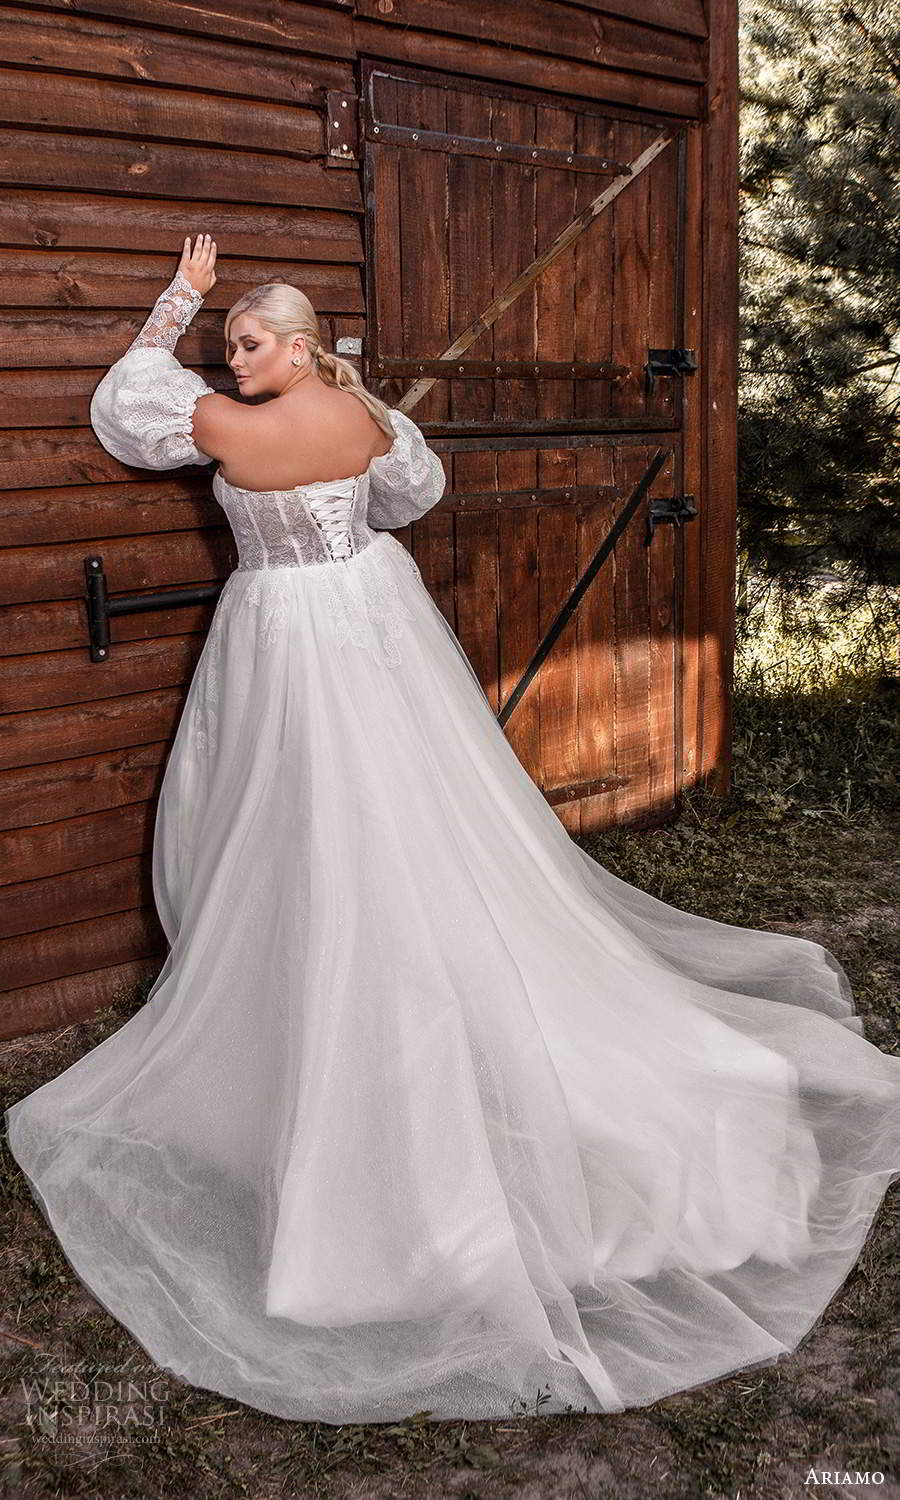 ariamo 2021 plus bridal detached puff sleeves strapless sweetheart neckline corset bodice a line ball gown wedding dress chapel train (10) bv